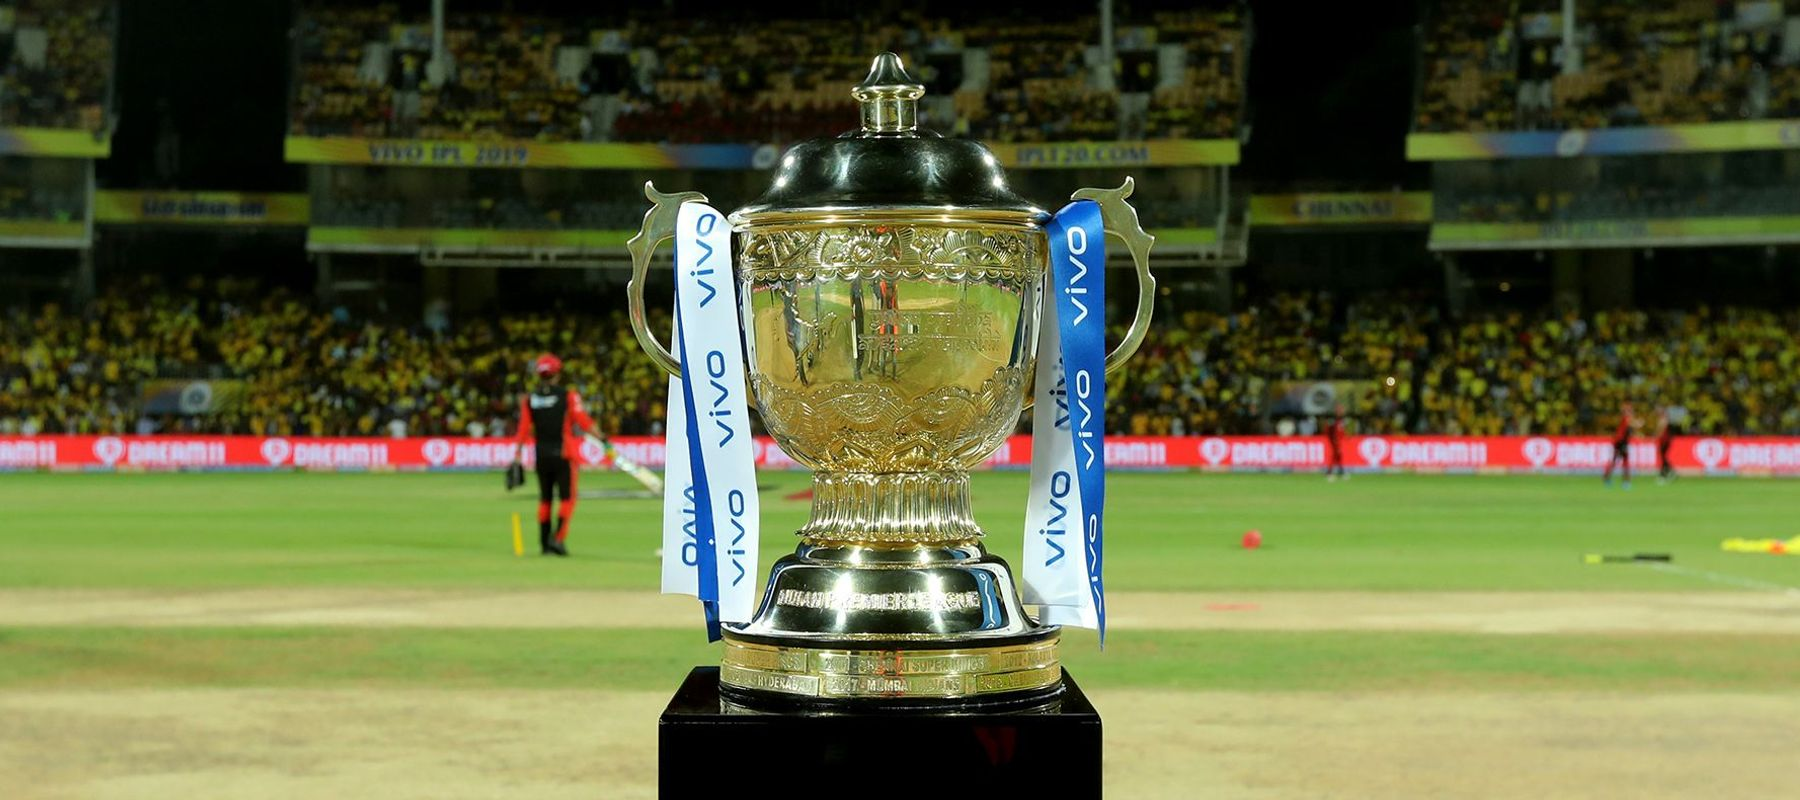 BCCI gets Indian govt nod to hold IPL 2020 in UAE